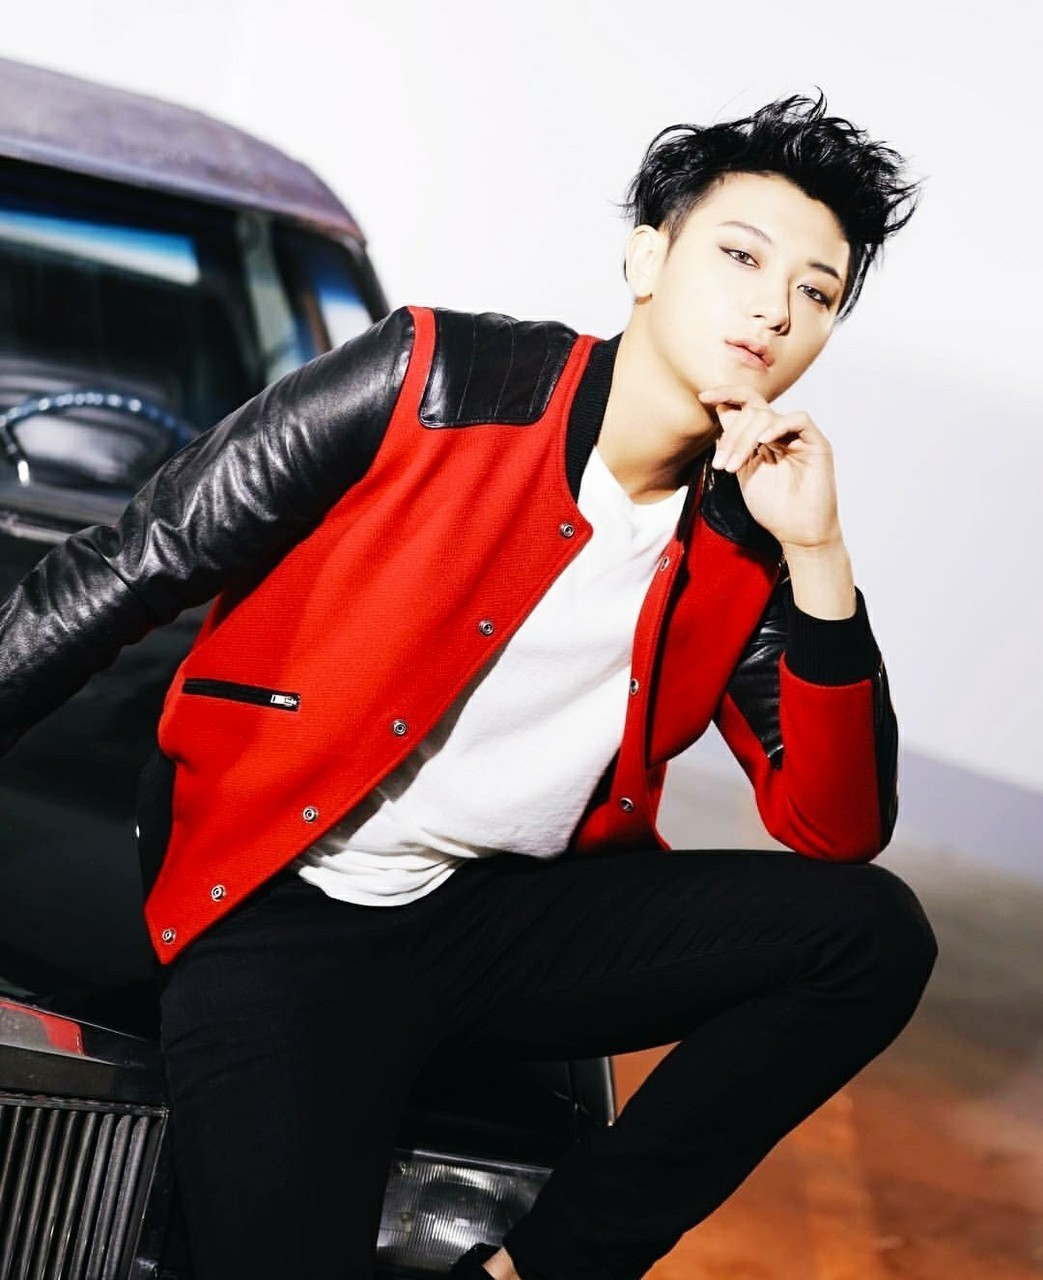 actor, huang zi tao, and singer image